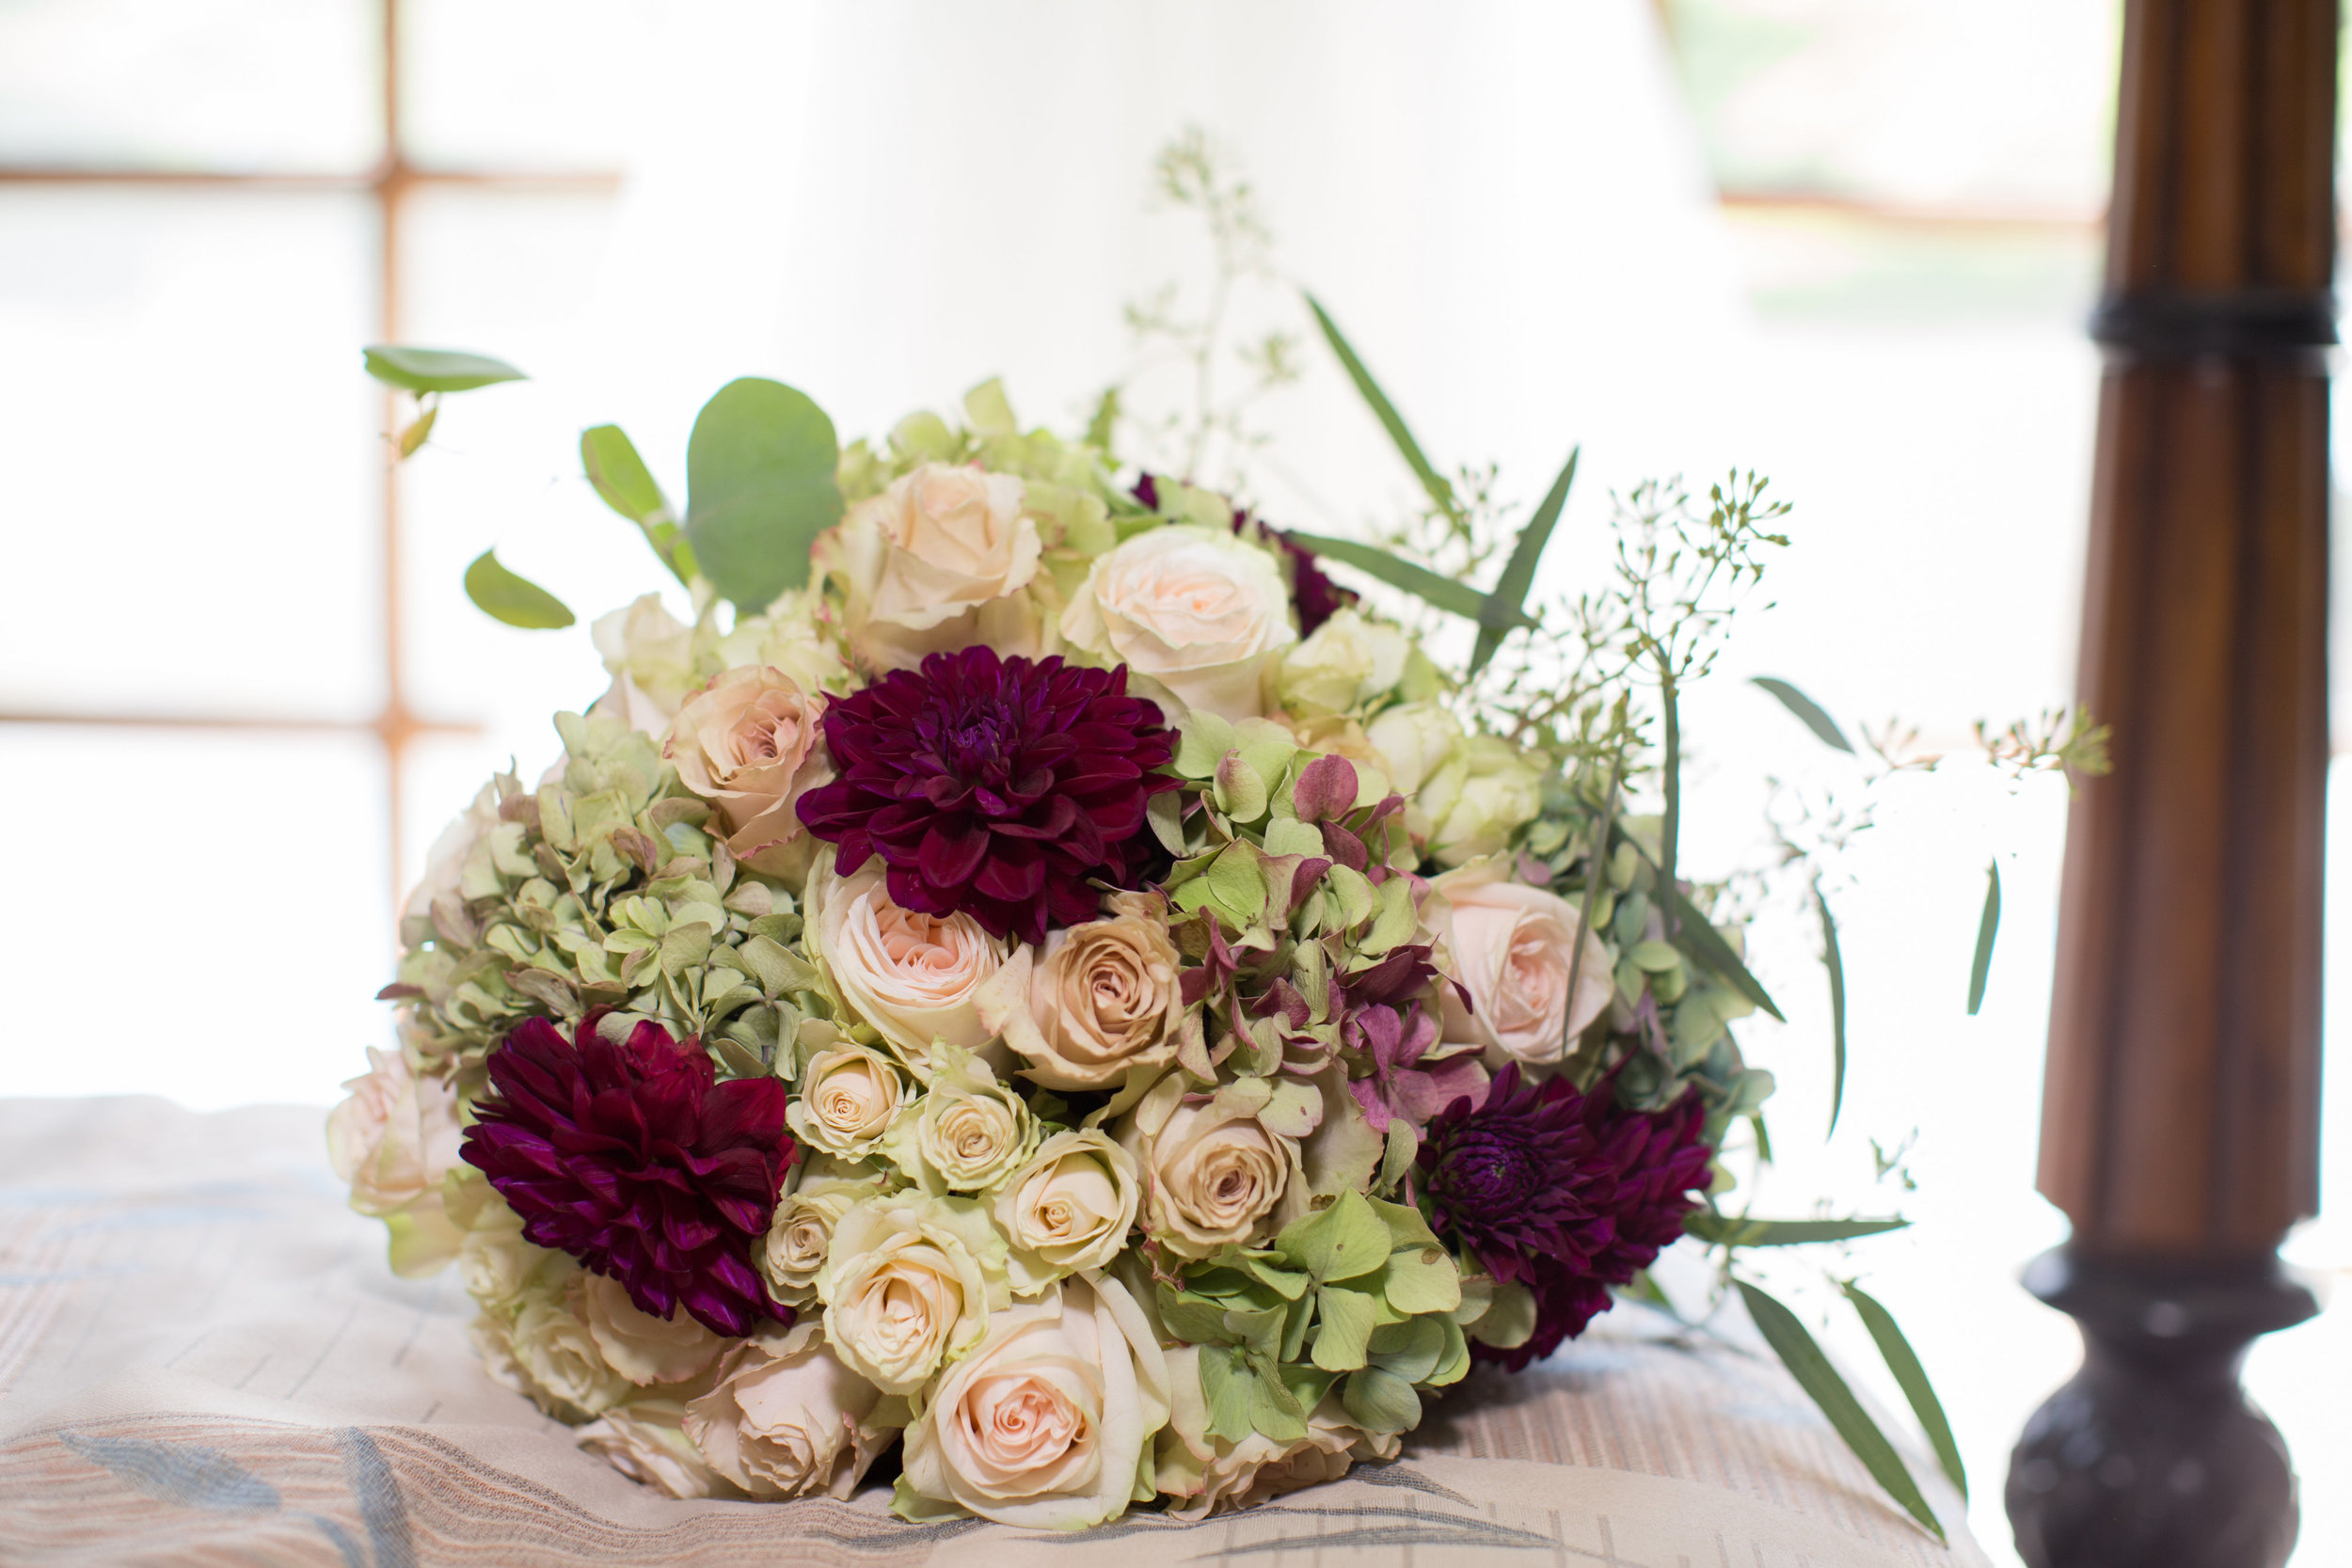 Blush & Merlot bouquet by Down Emery Lane.